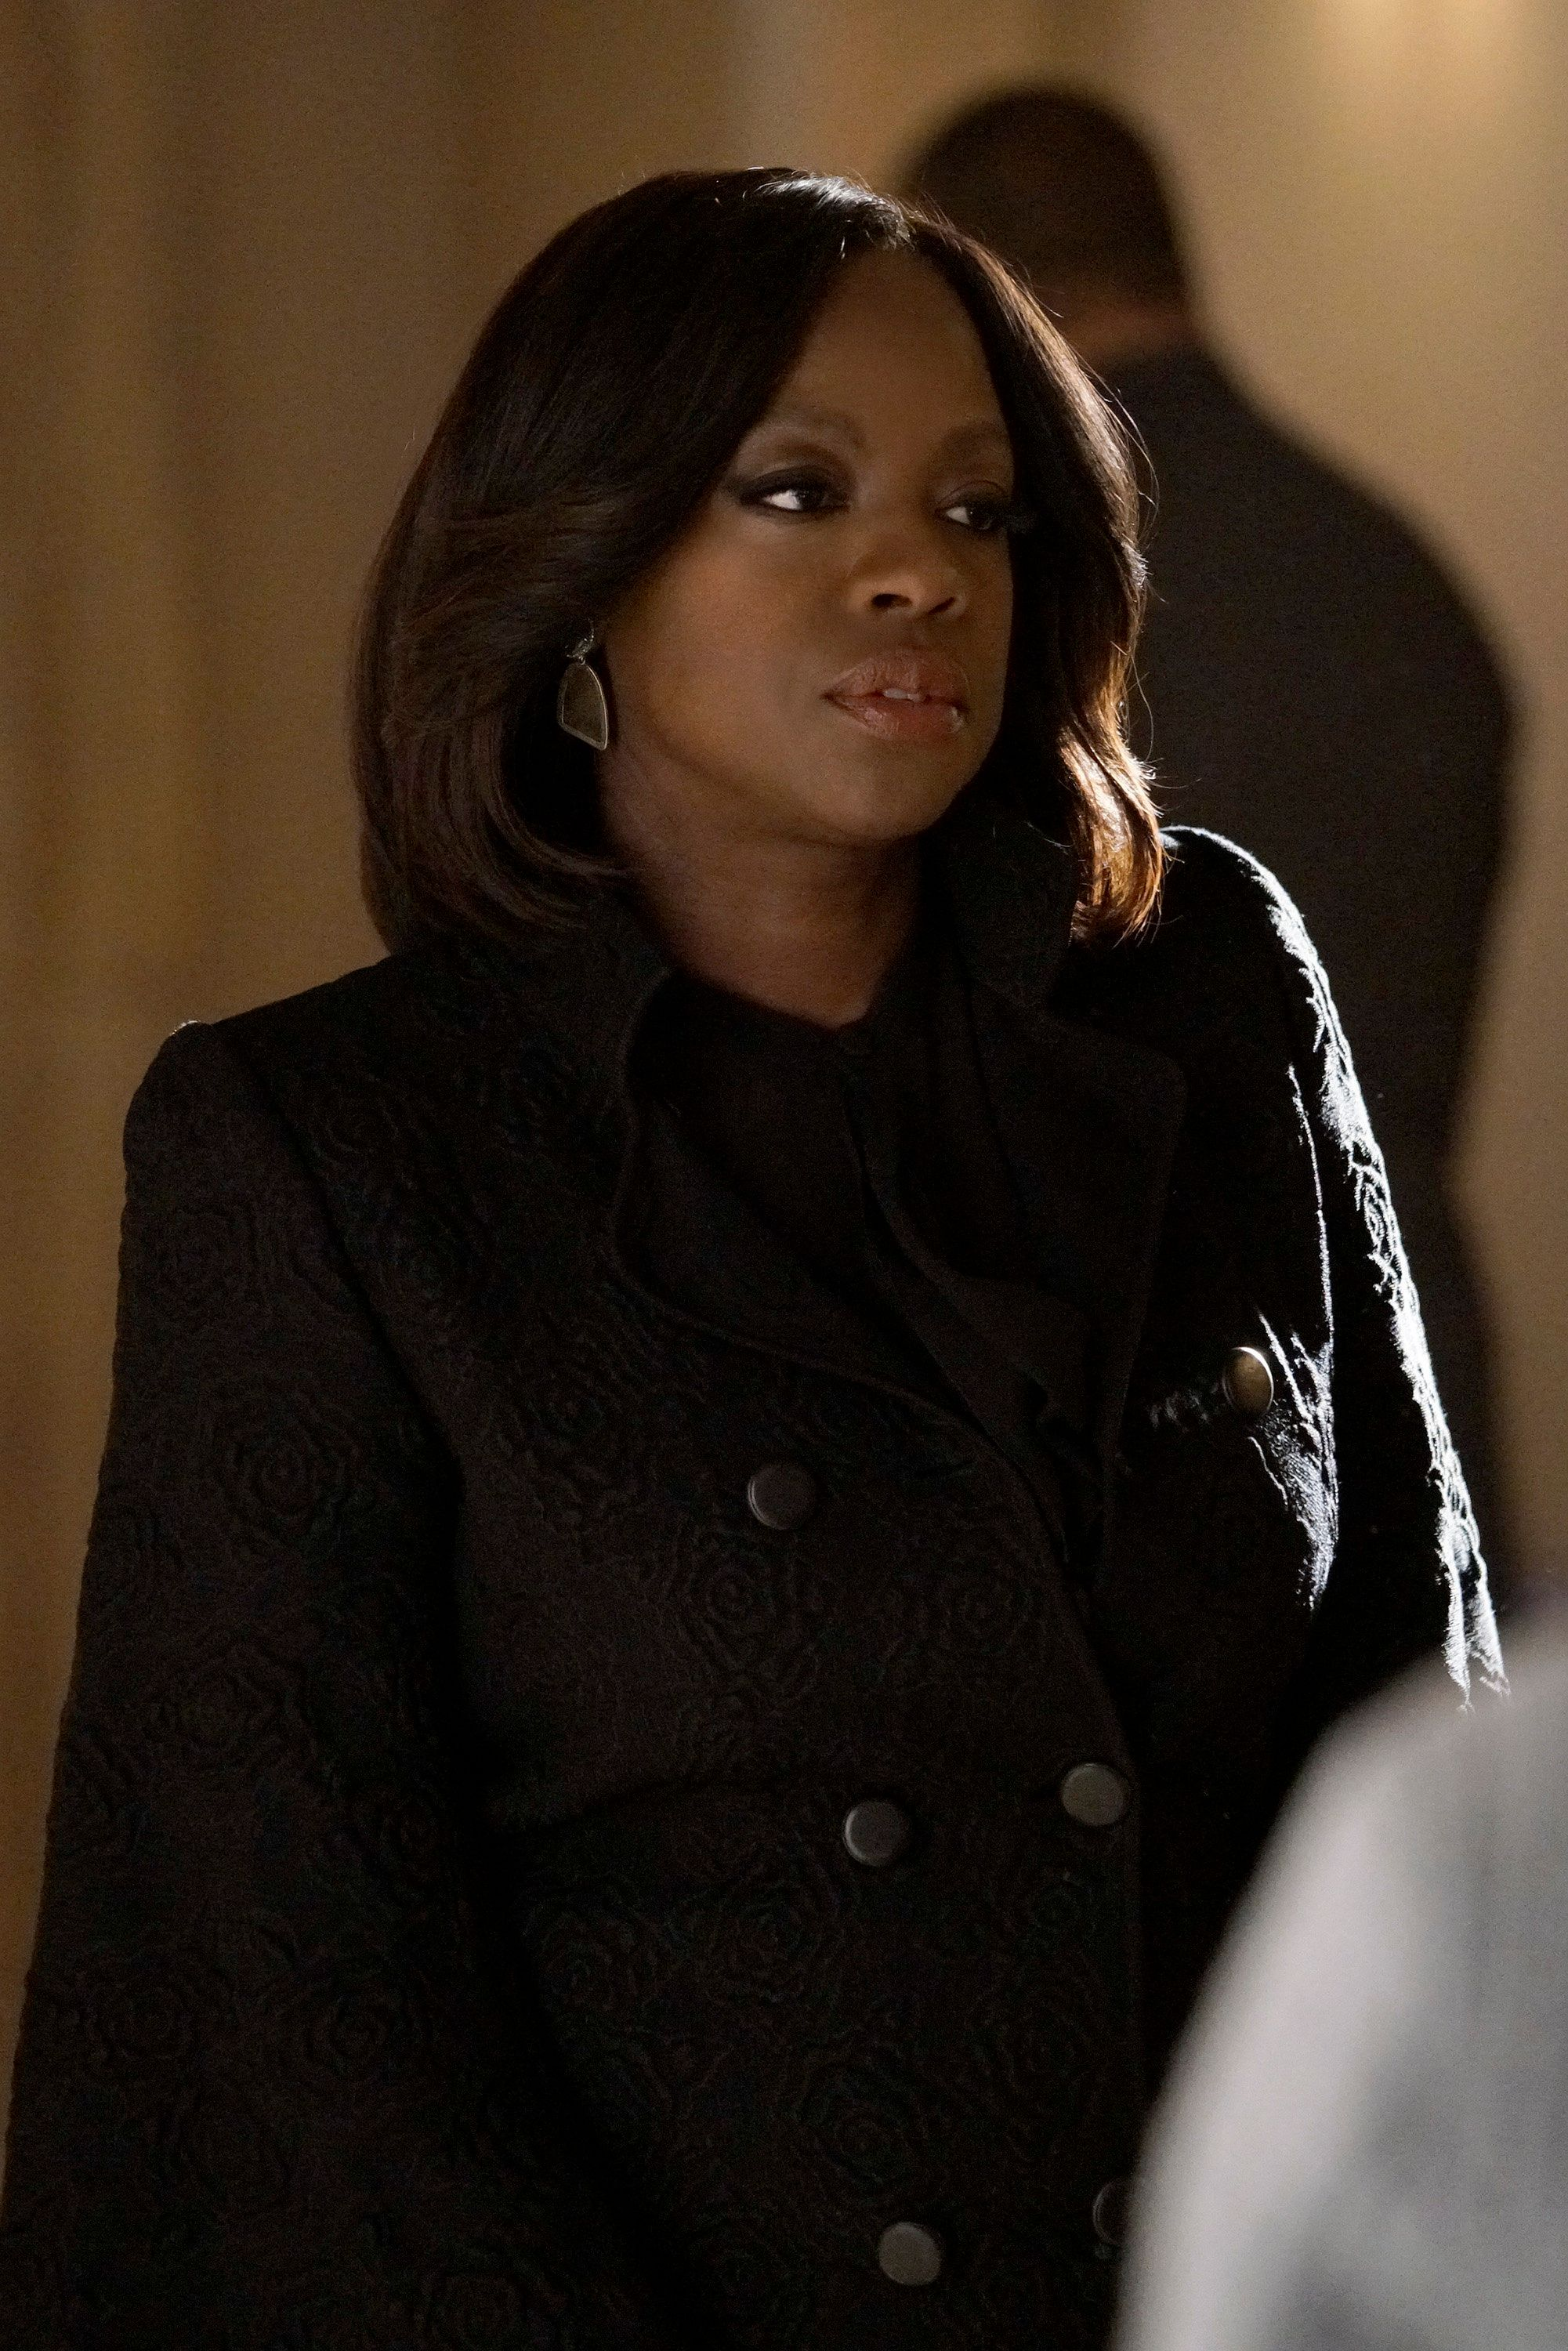 HOW TO GET AWAY WITH MURDER - 'She Hates Us' - Tensions in the Keating household run high, as each student struggles in their own way trying to return to normalcy. In a flashback, we'll learn new details about Annalise's past on 'How to Get Away with Murder,' THURSDAY, FEBRUARY 18 (10:00-11:00 p.m. EST) on the ABC Television Network. (Photo by Michael Desmond/ABC via Getty Images) VIOLA DAVIS